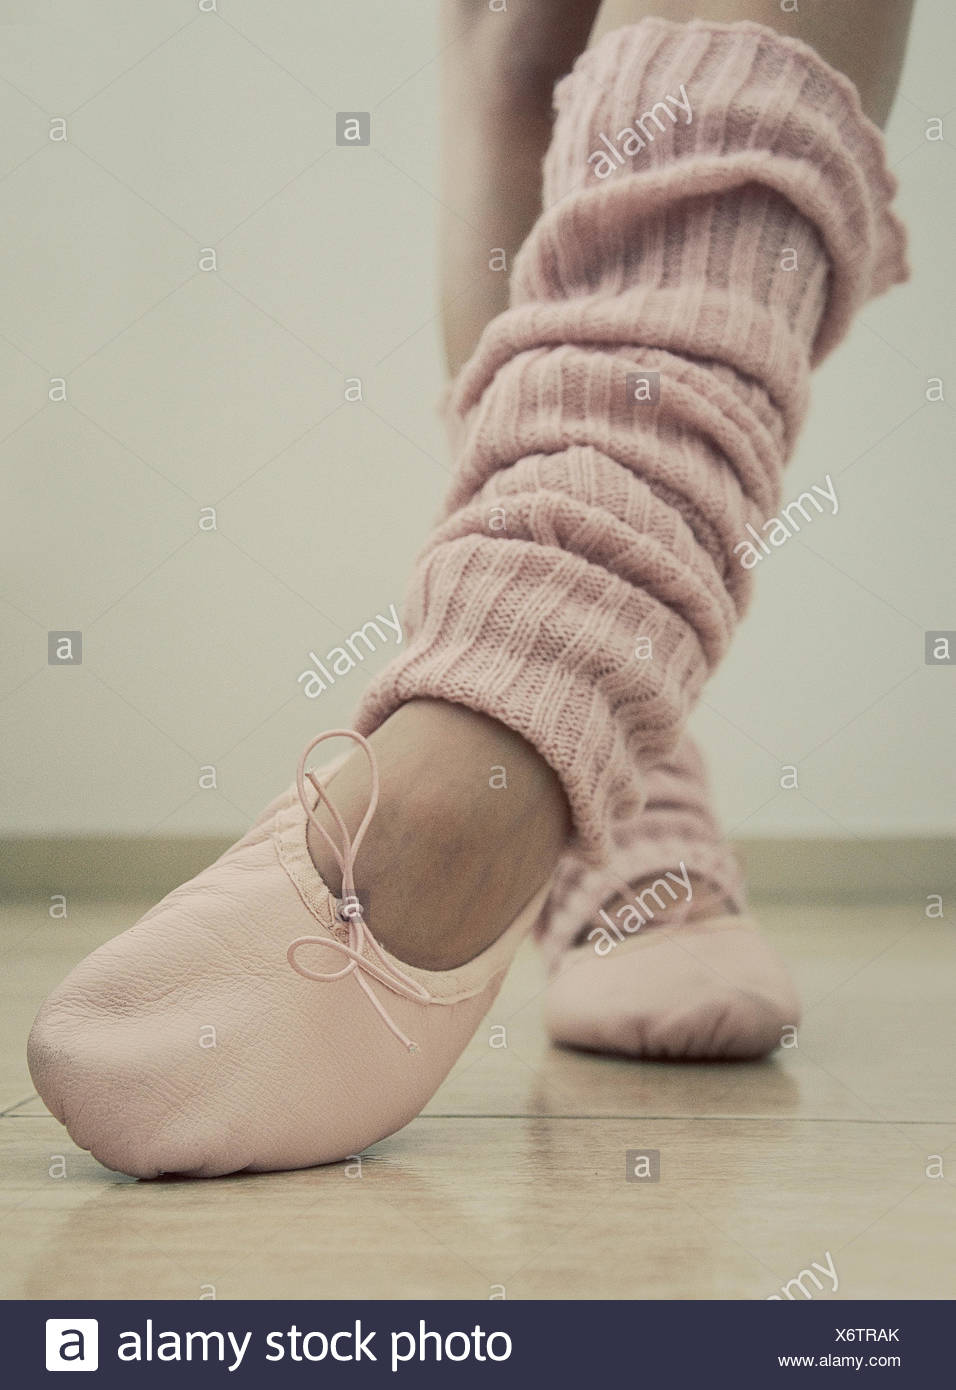 Close-up of a teenage girl's legs, ballet shoes and leg warmers - Stock Image